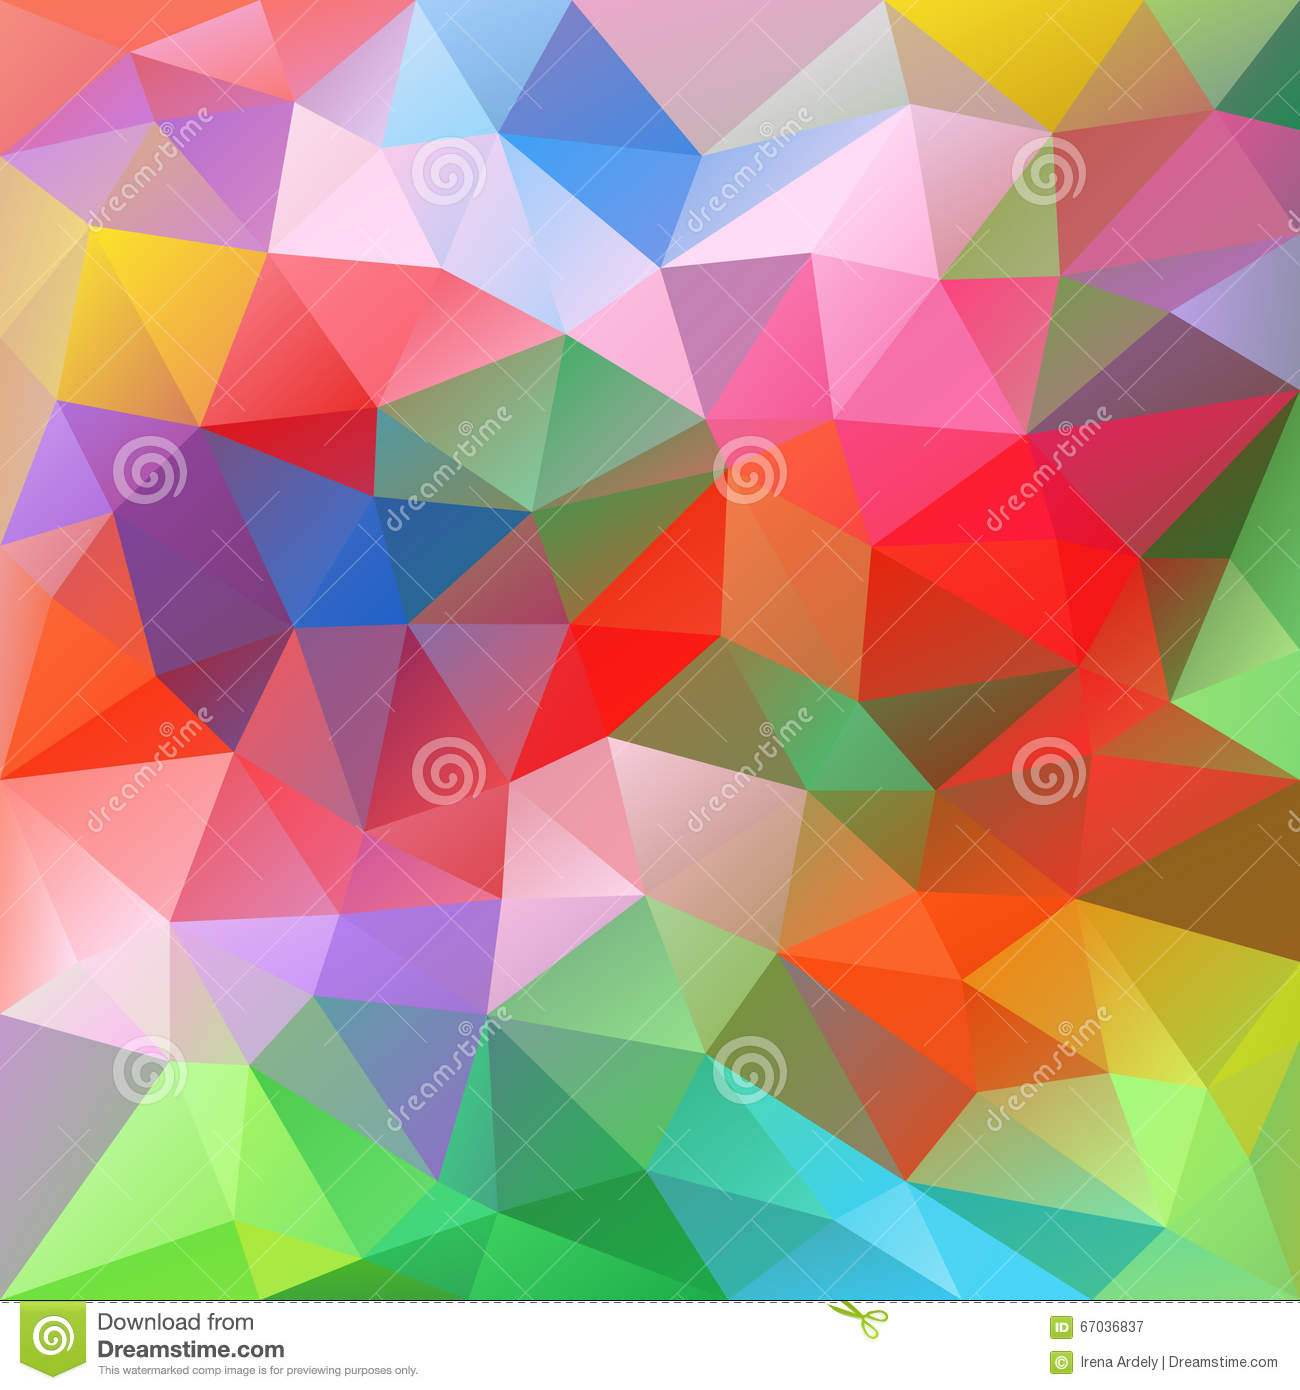 abstract polygonal colorful background - photo #19